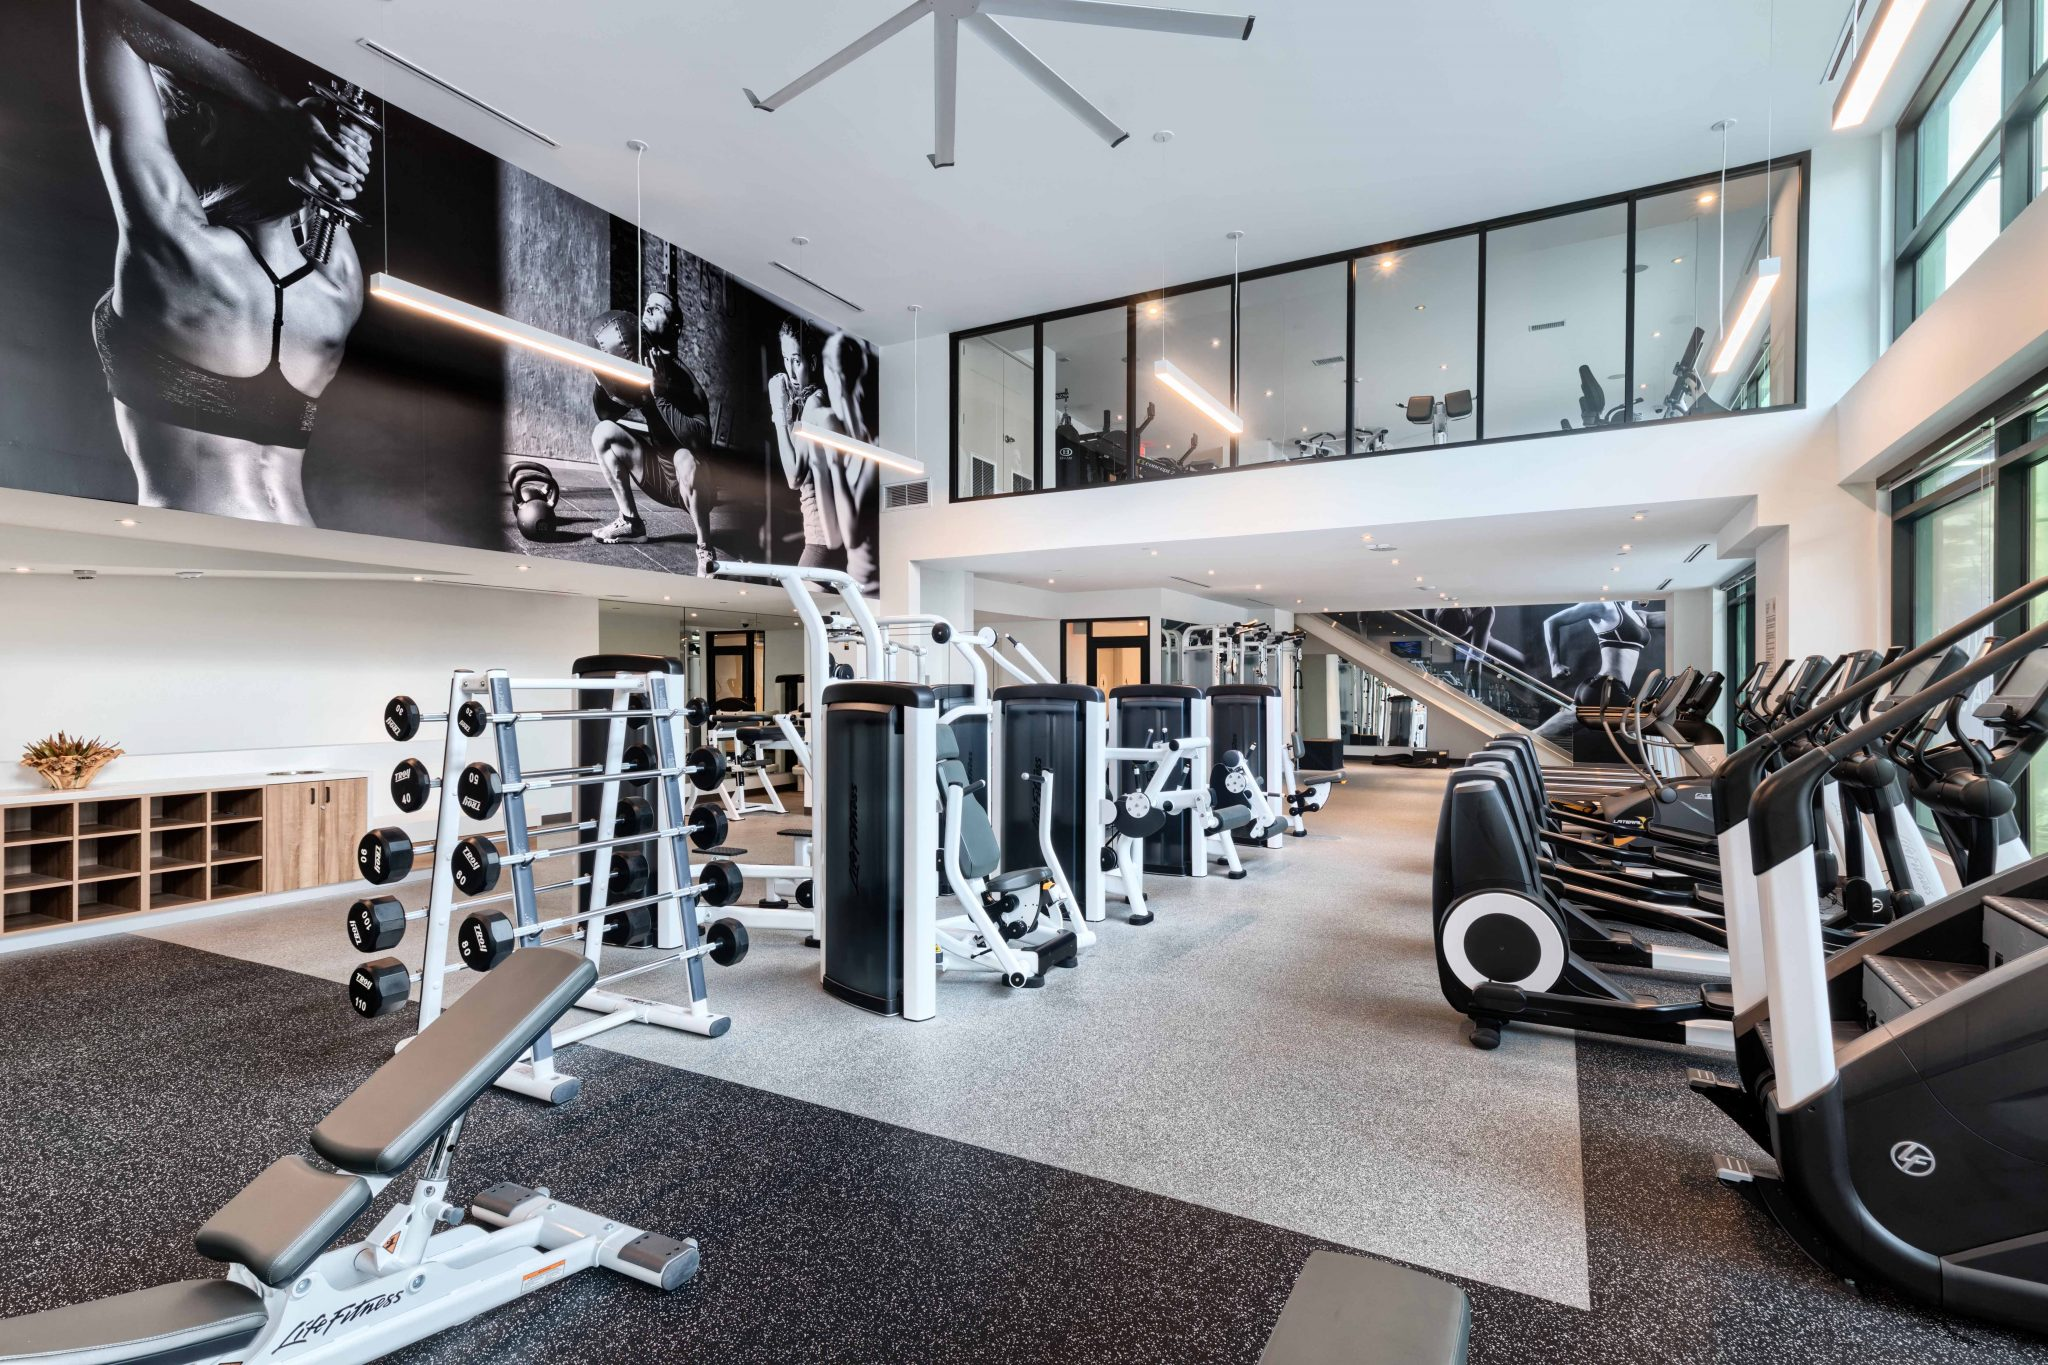 Interior of fitness center with free weights, exercise machines and high ceilings